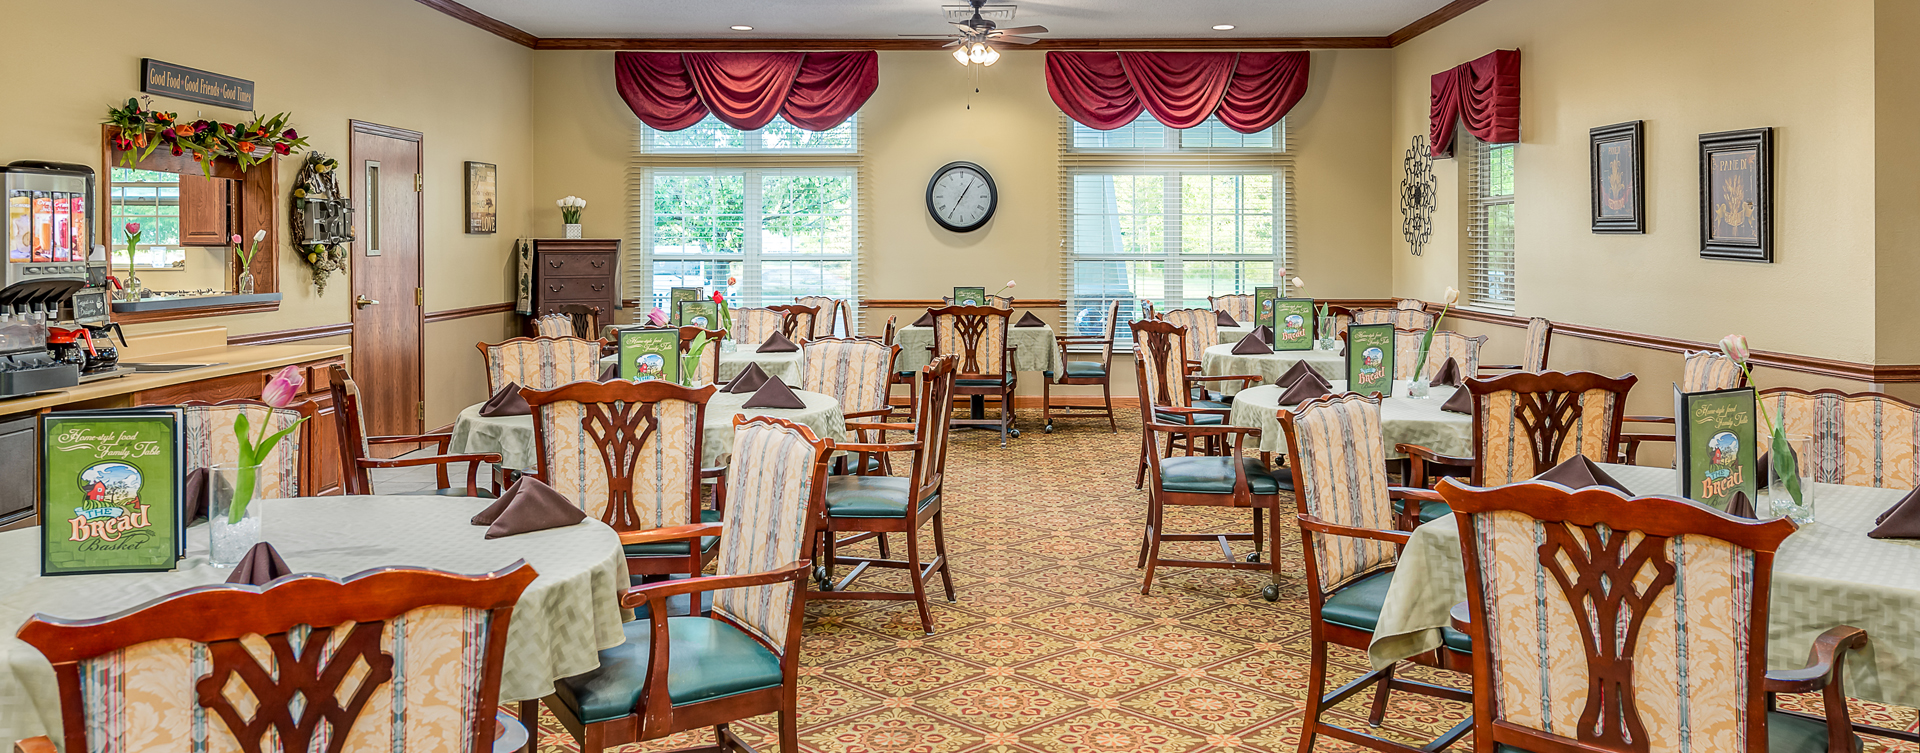 Enjoy homestyle food with made-from-scratch recipes in our dining room at Bickford of Midland